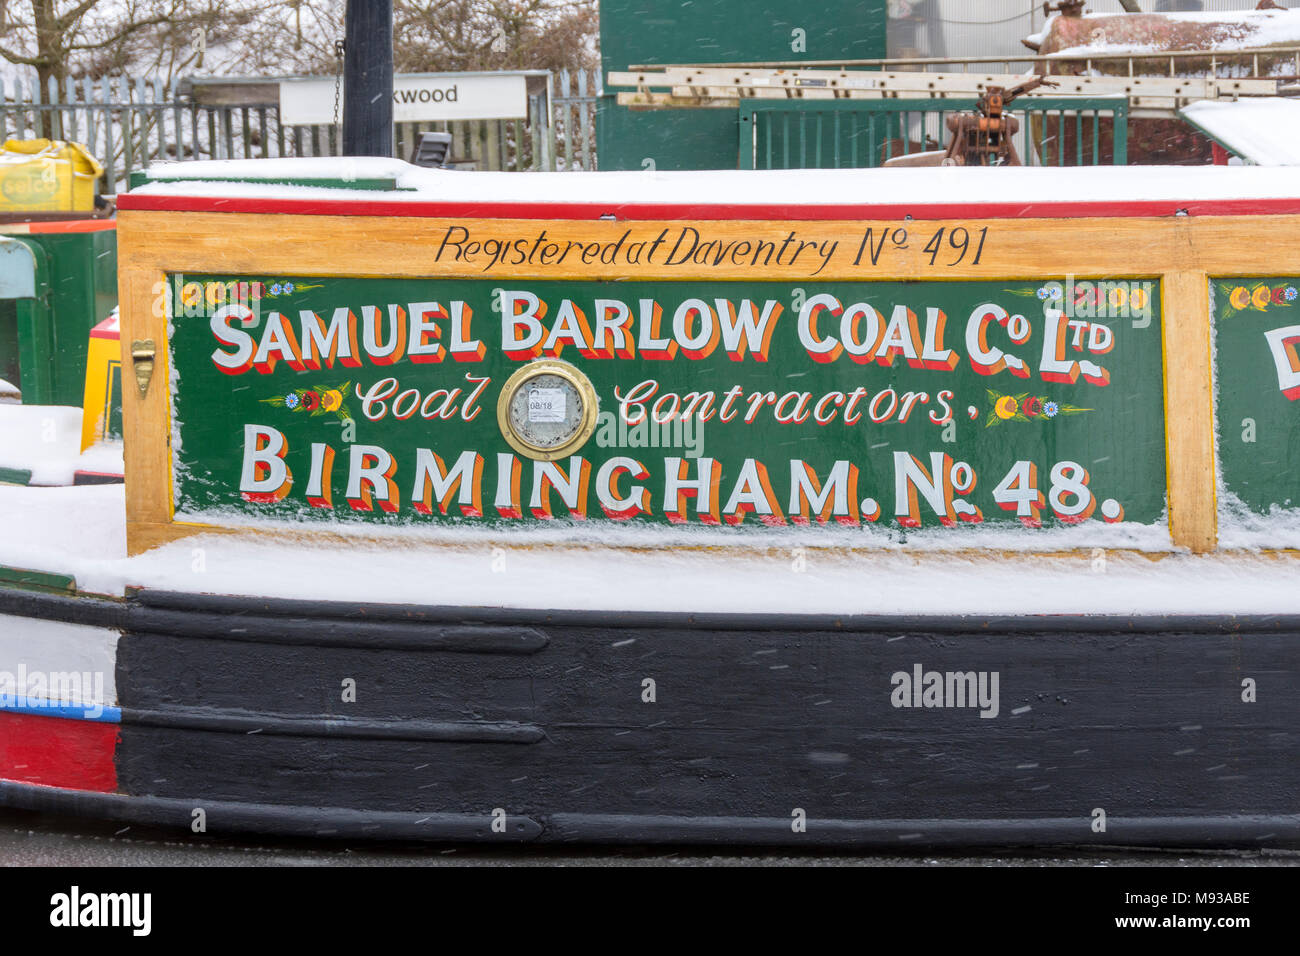 Signage on a narrowboat on the Ashton Canal at Ashton-under-Lyne, Tameside, Manchester, England, UK - Stock Image